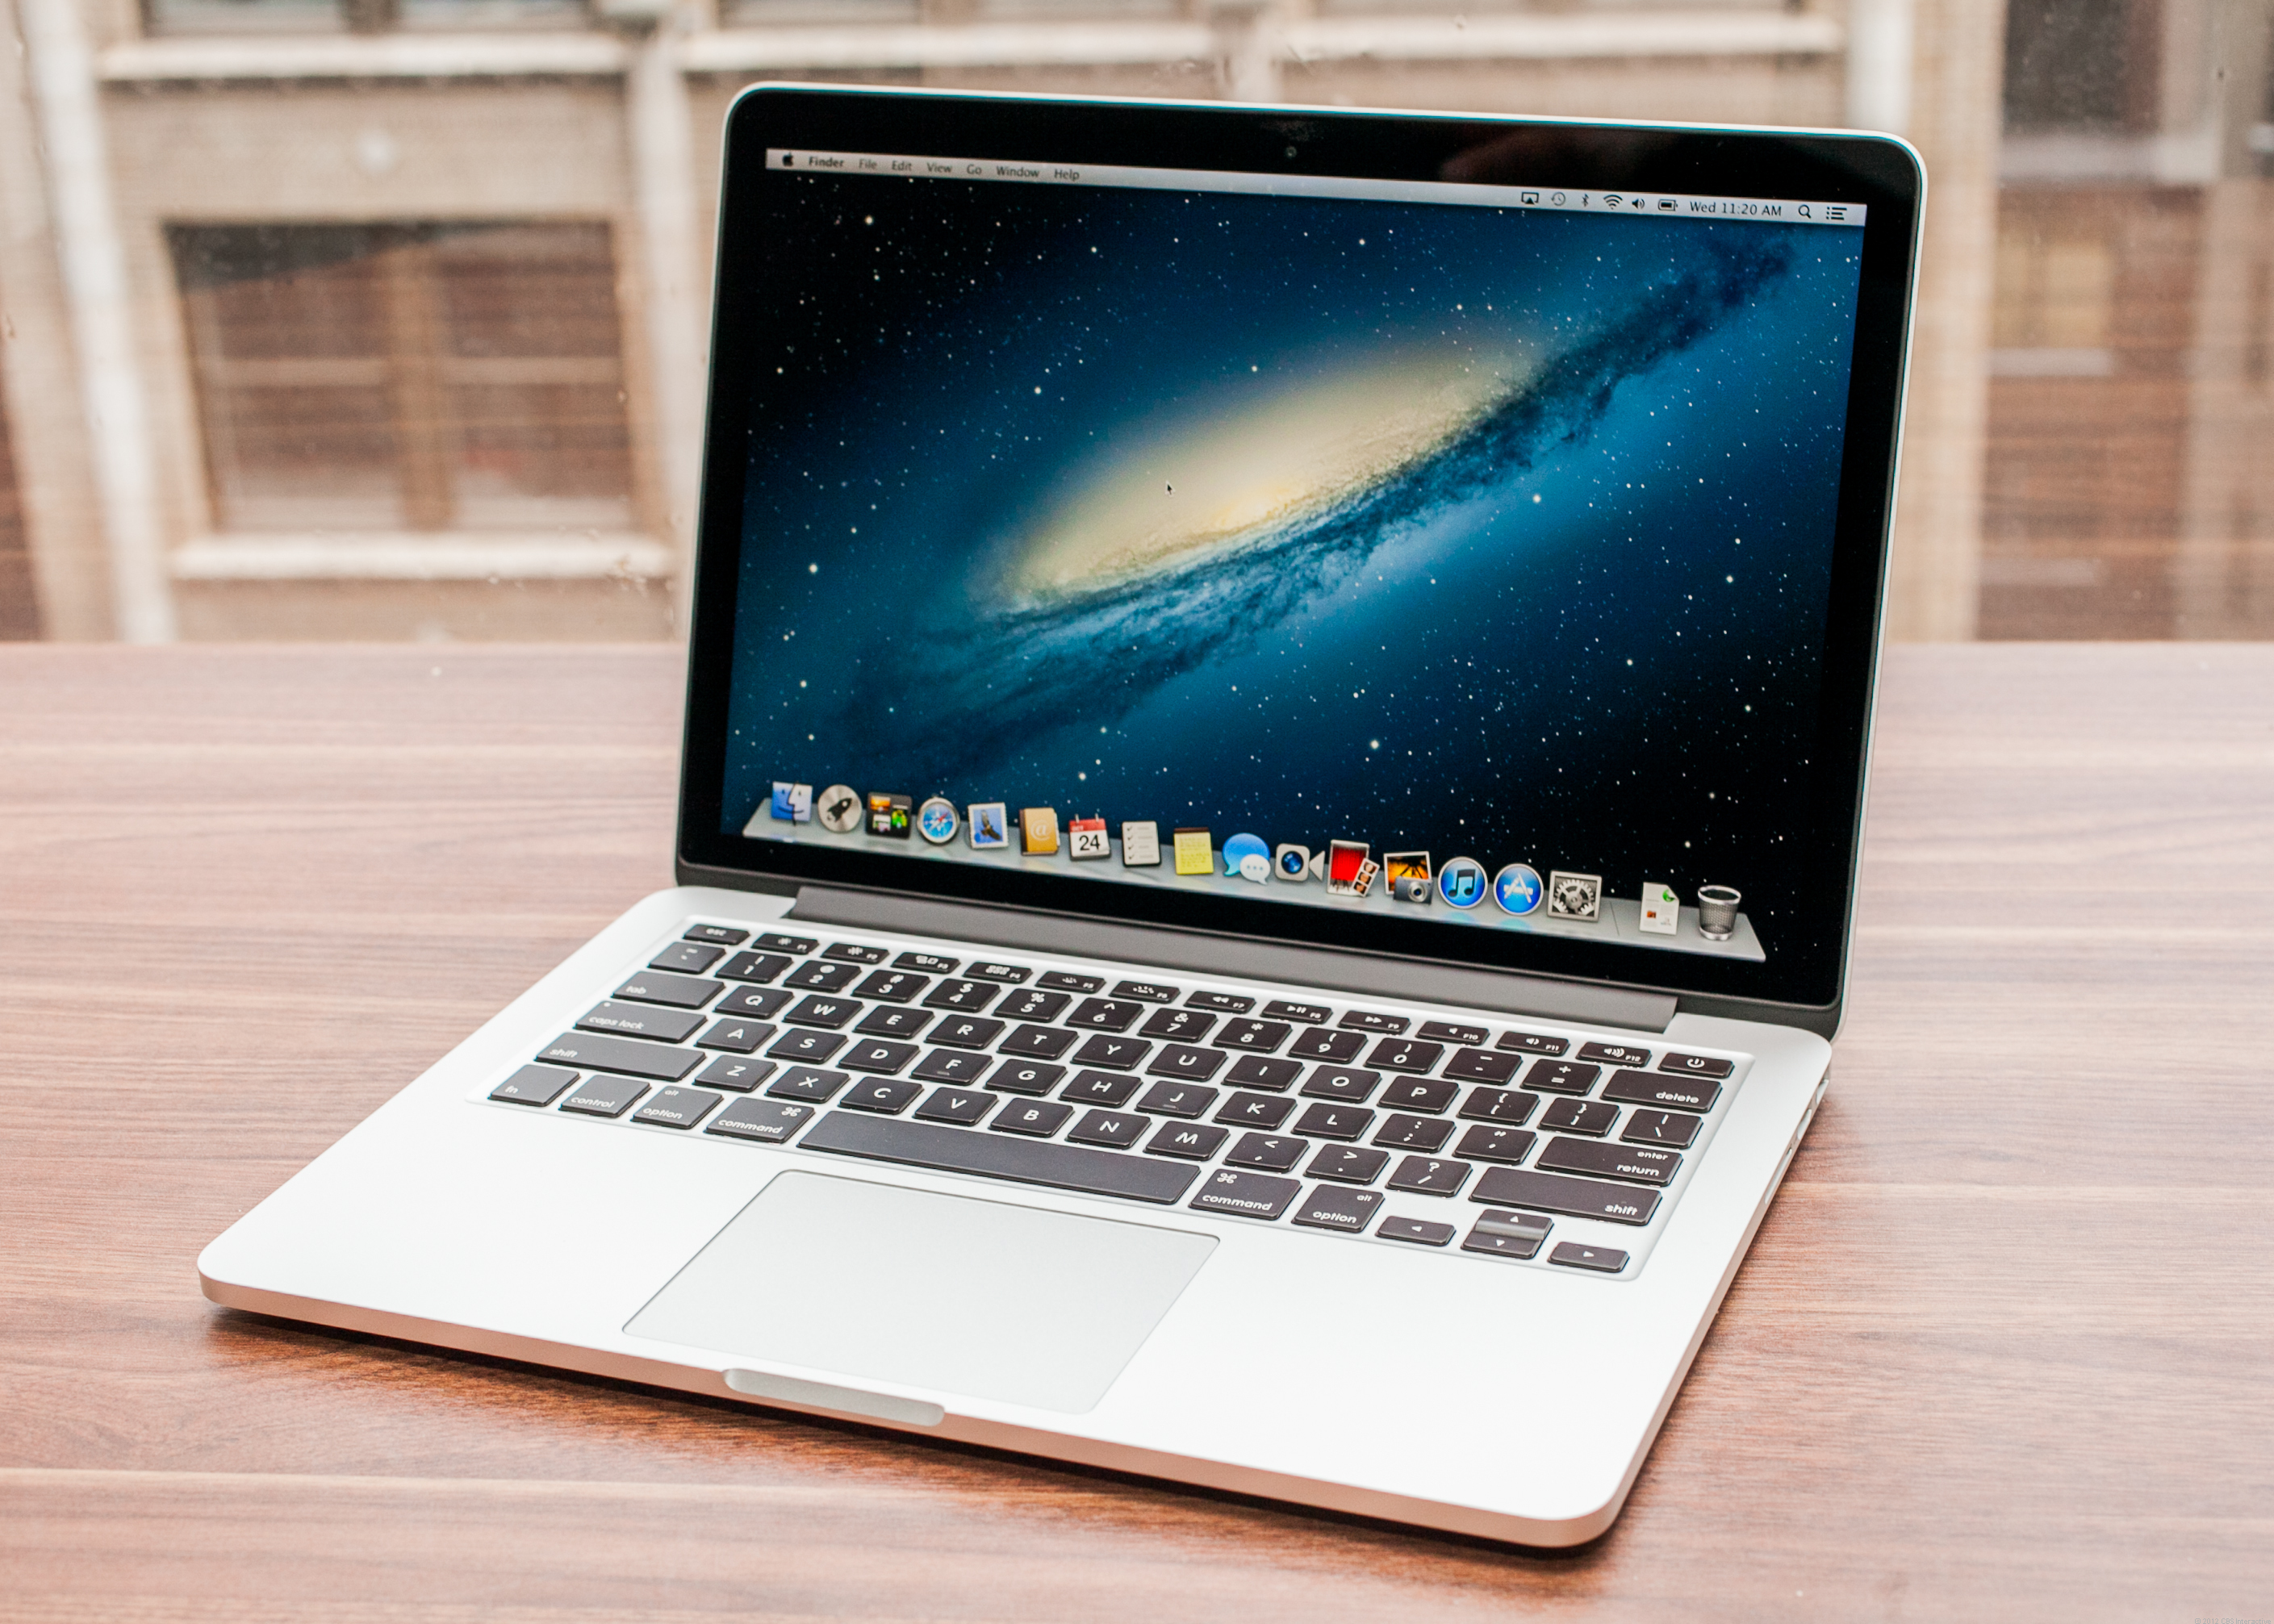 Apple MacBook Pro with Retina Display (13.3-inch)